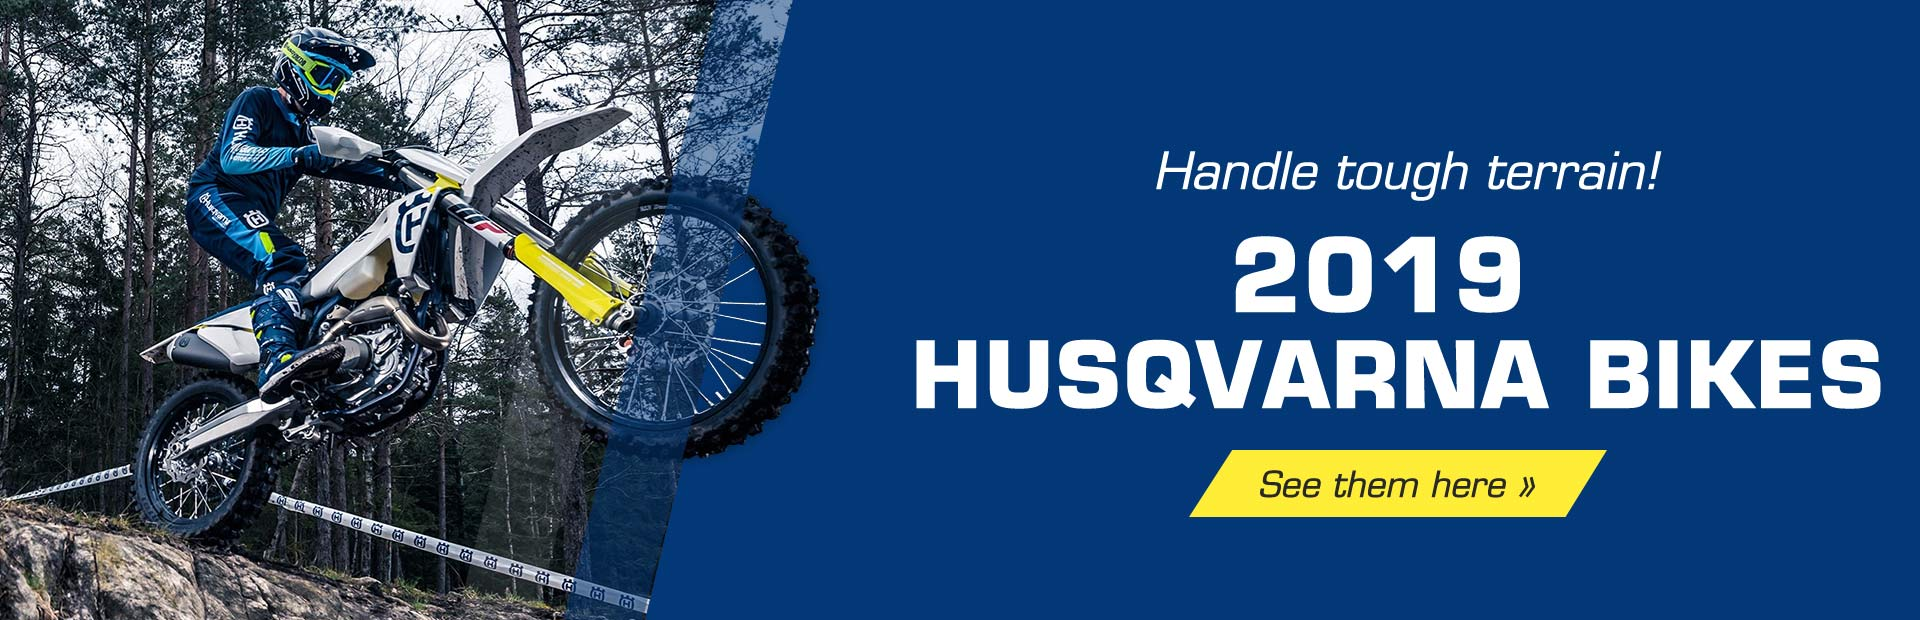 Handle tough terrain with 2019 Husqvarna bikes! Click here to view the models.